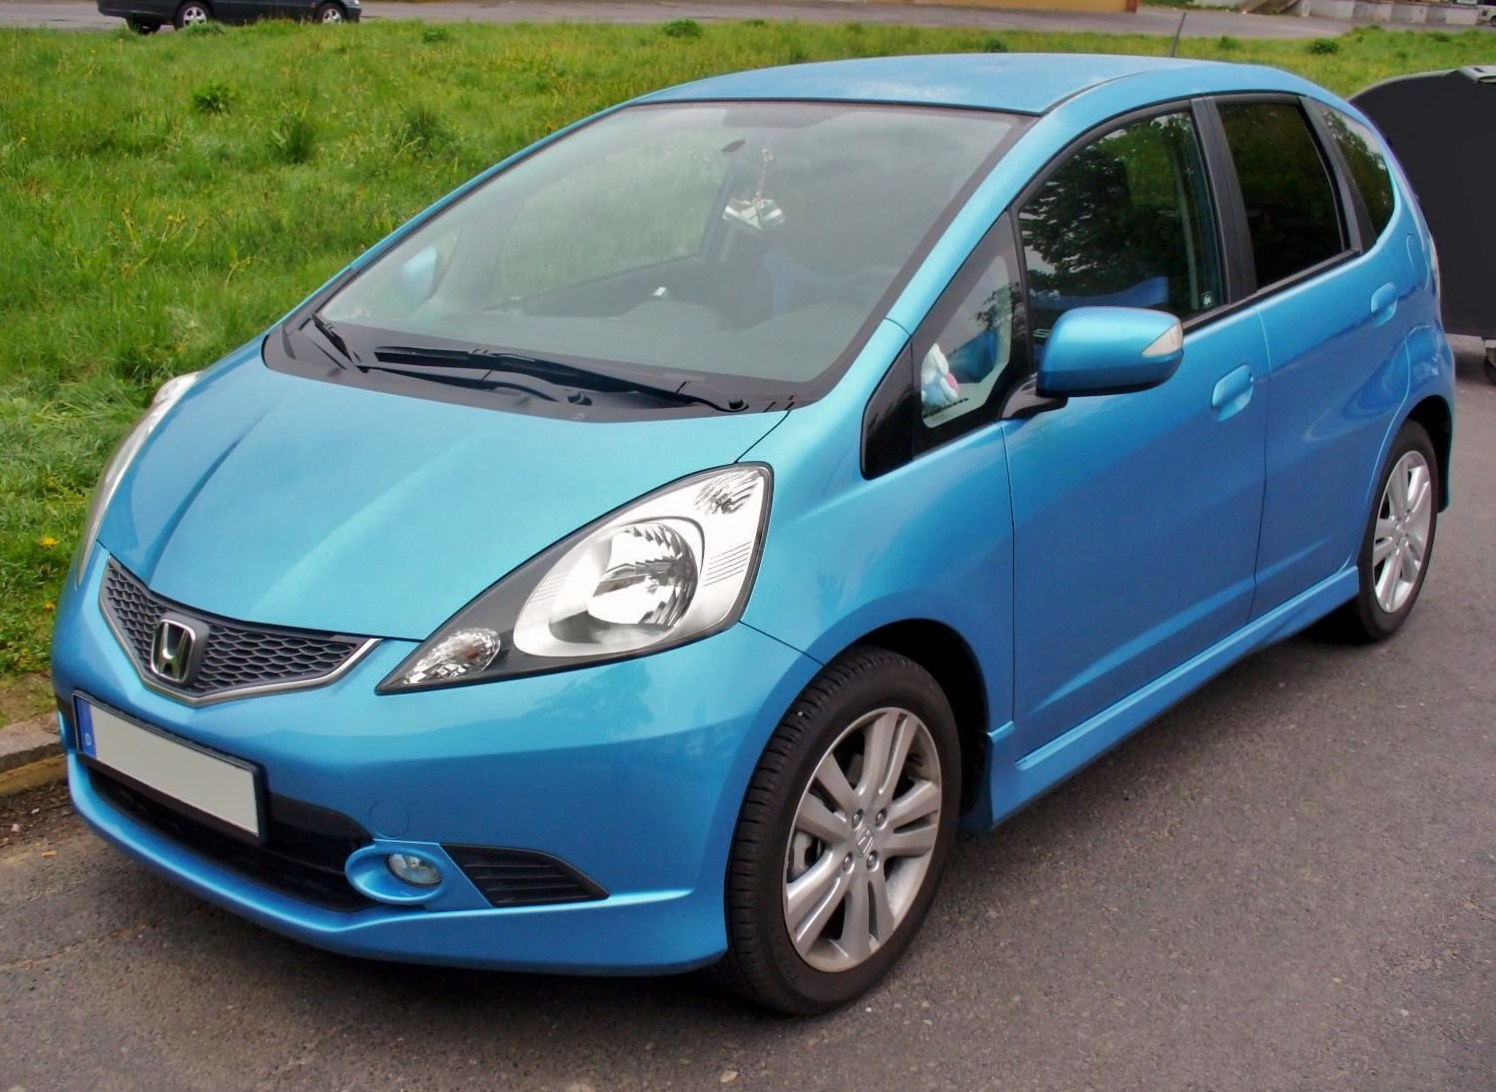 honda jazz hd wallpapers honda jazz hd wallpapers honda jazz hd